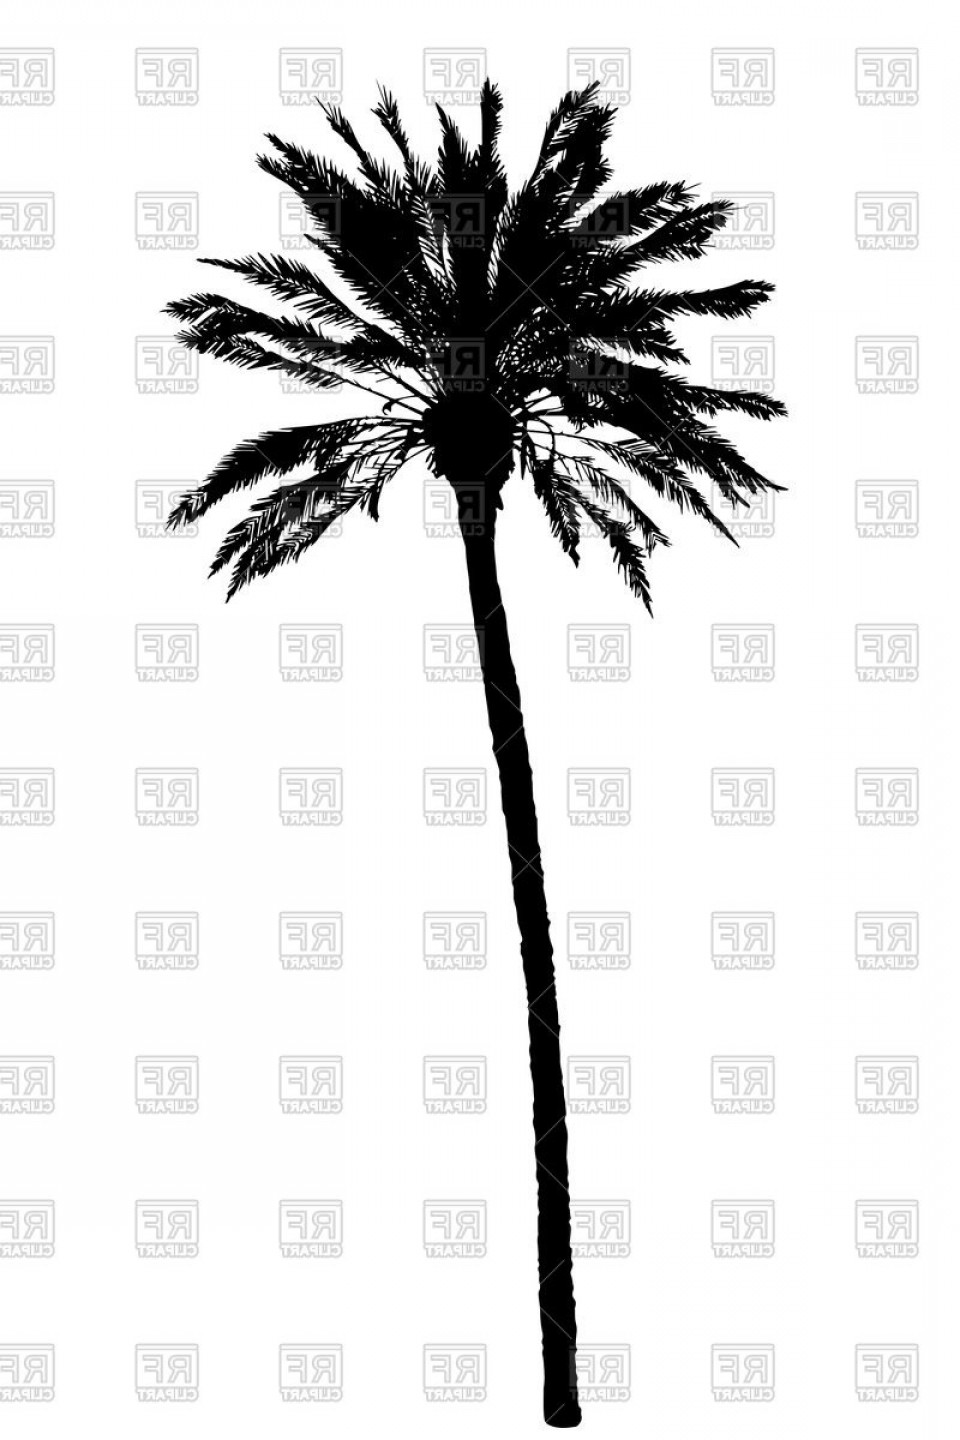 Tree Silhouette Vector Clip Art: Palm Tree Silhouette Vector Clipart